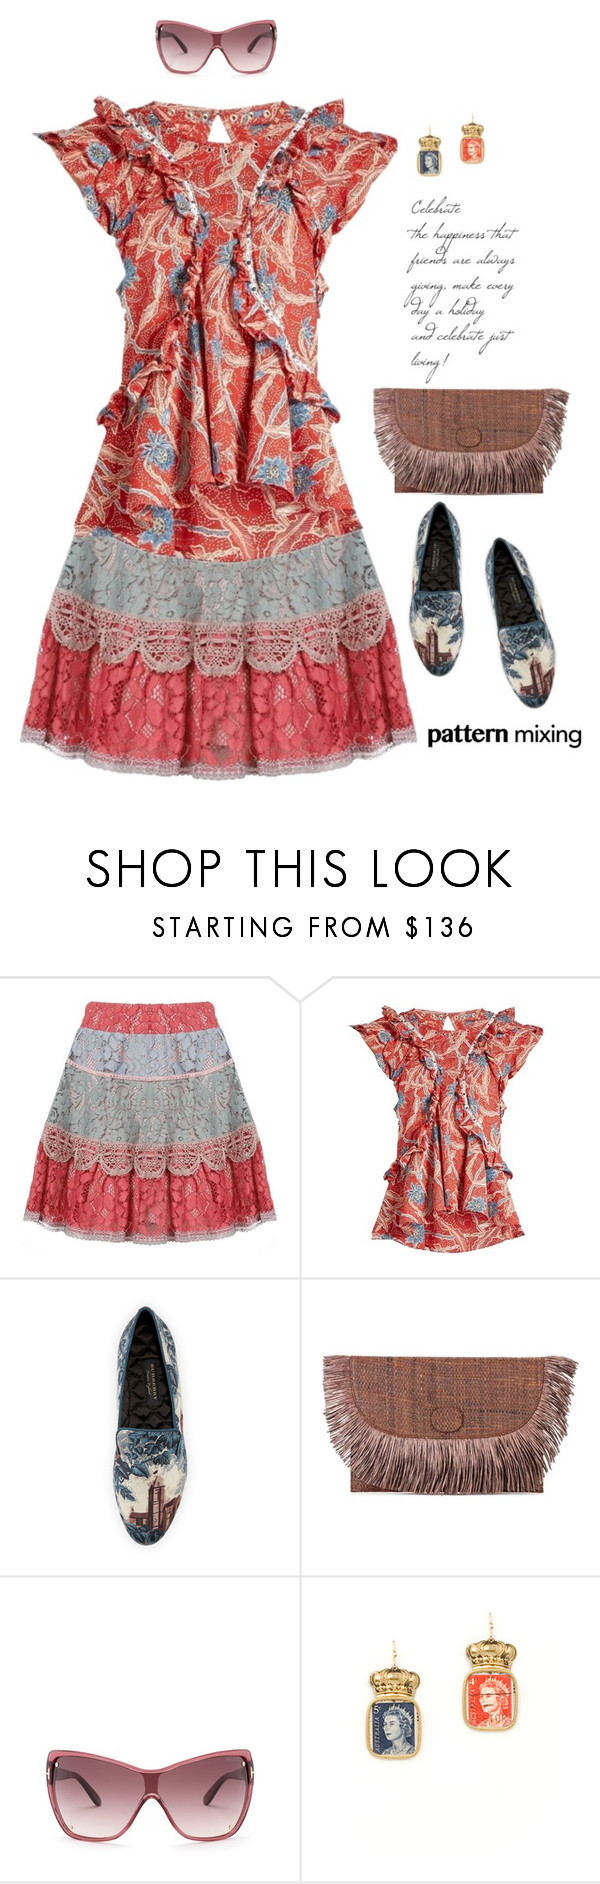 """""""Stay Bold: Pattern Mixing"""" by lence-59 ❤ liked on Polyvore featuring Alexis, Isabel Marant, Burberry, Sanayi 313, Tom Ford, Marquis & Camus and patternmixing"""